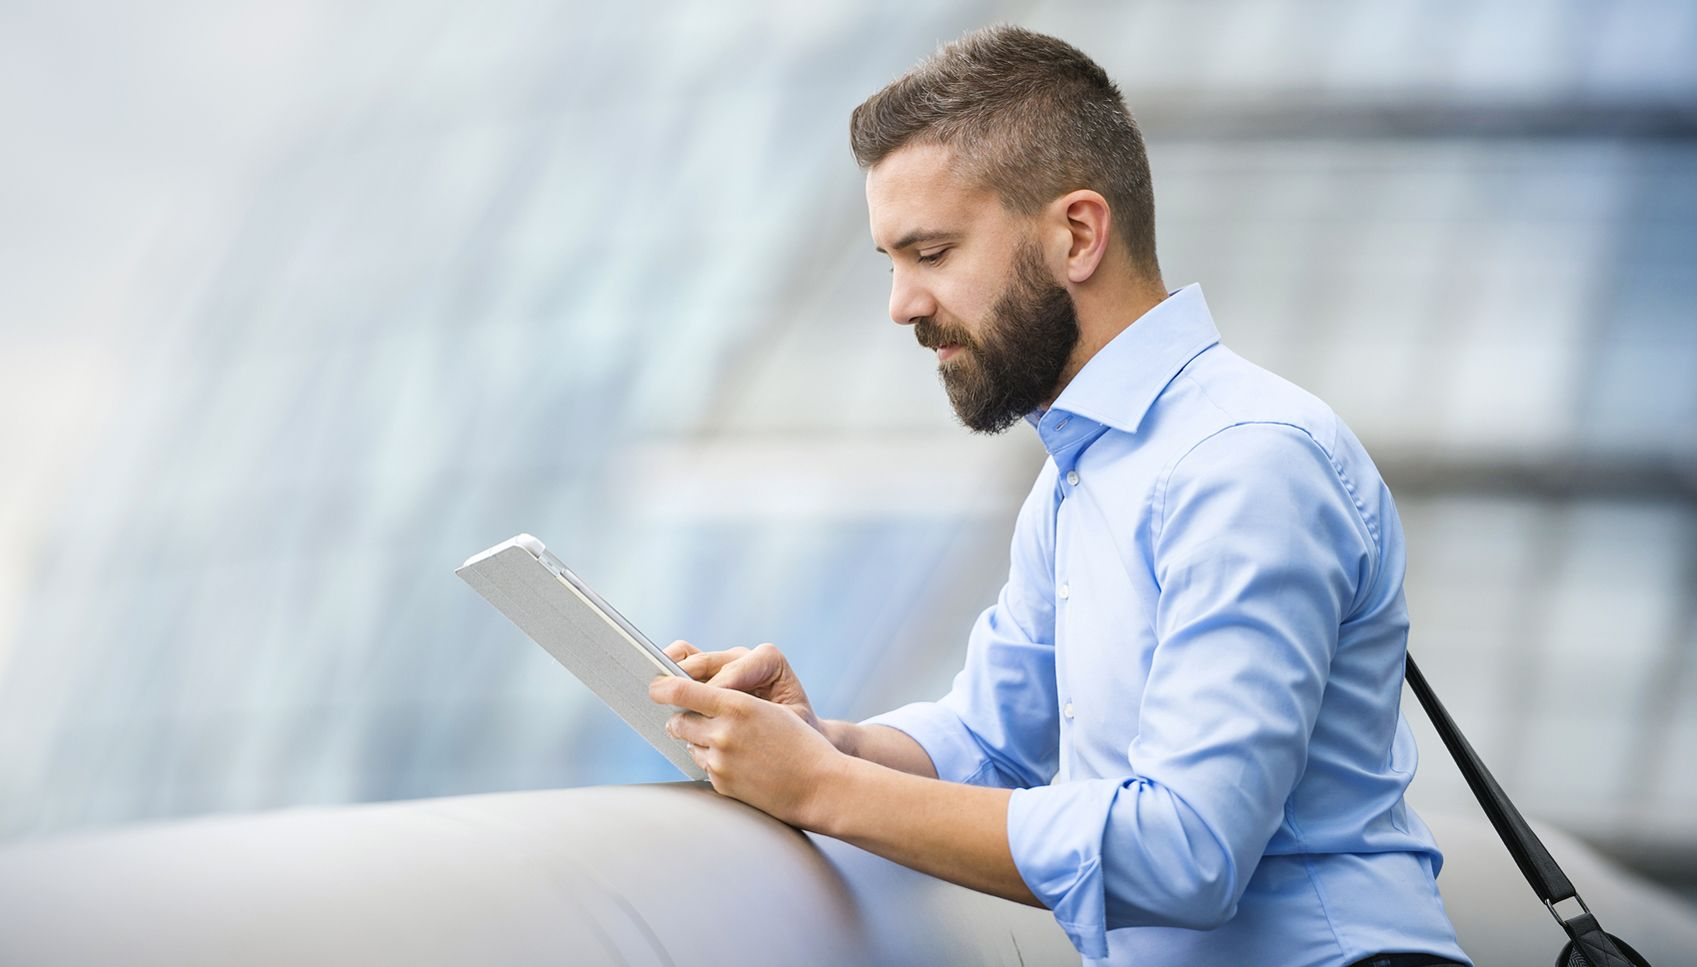 Tablets Linked to Shoulder and Neck Pain